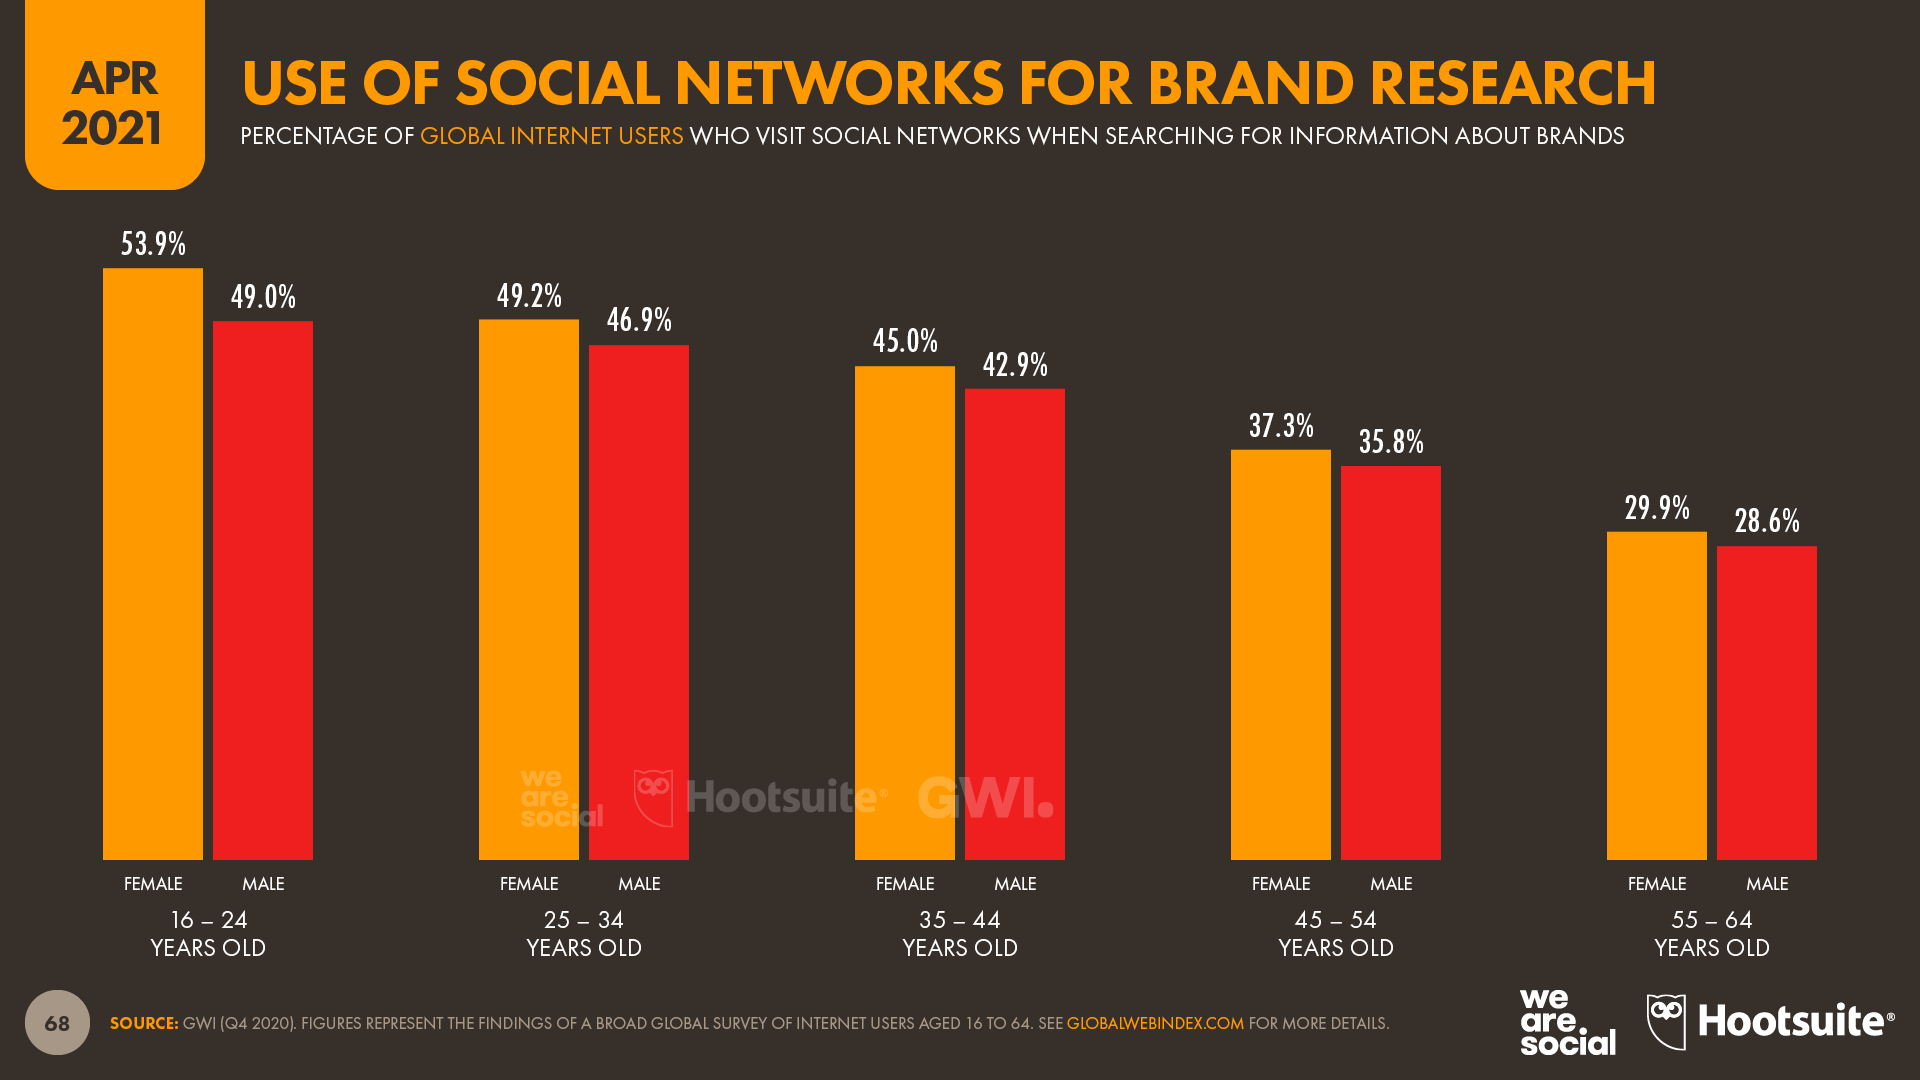 Use of Social Networks for Researching Brands (Age & Gender) April 2021 DataReportal